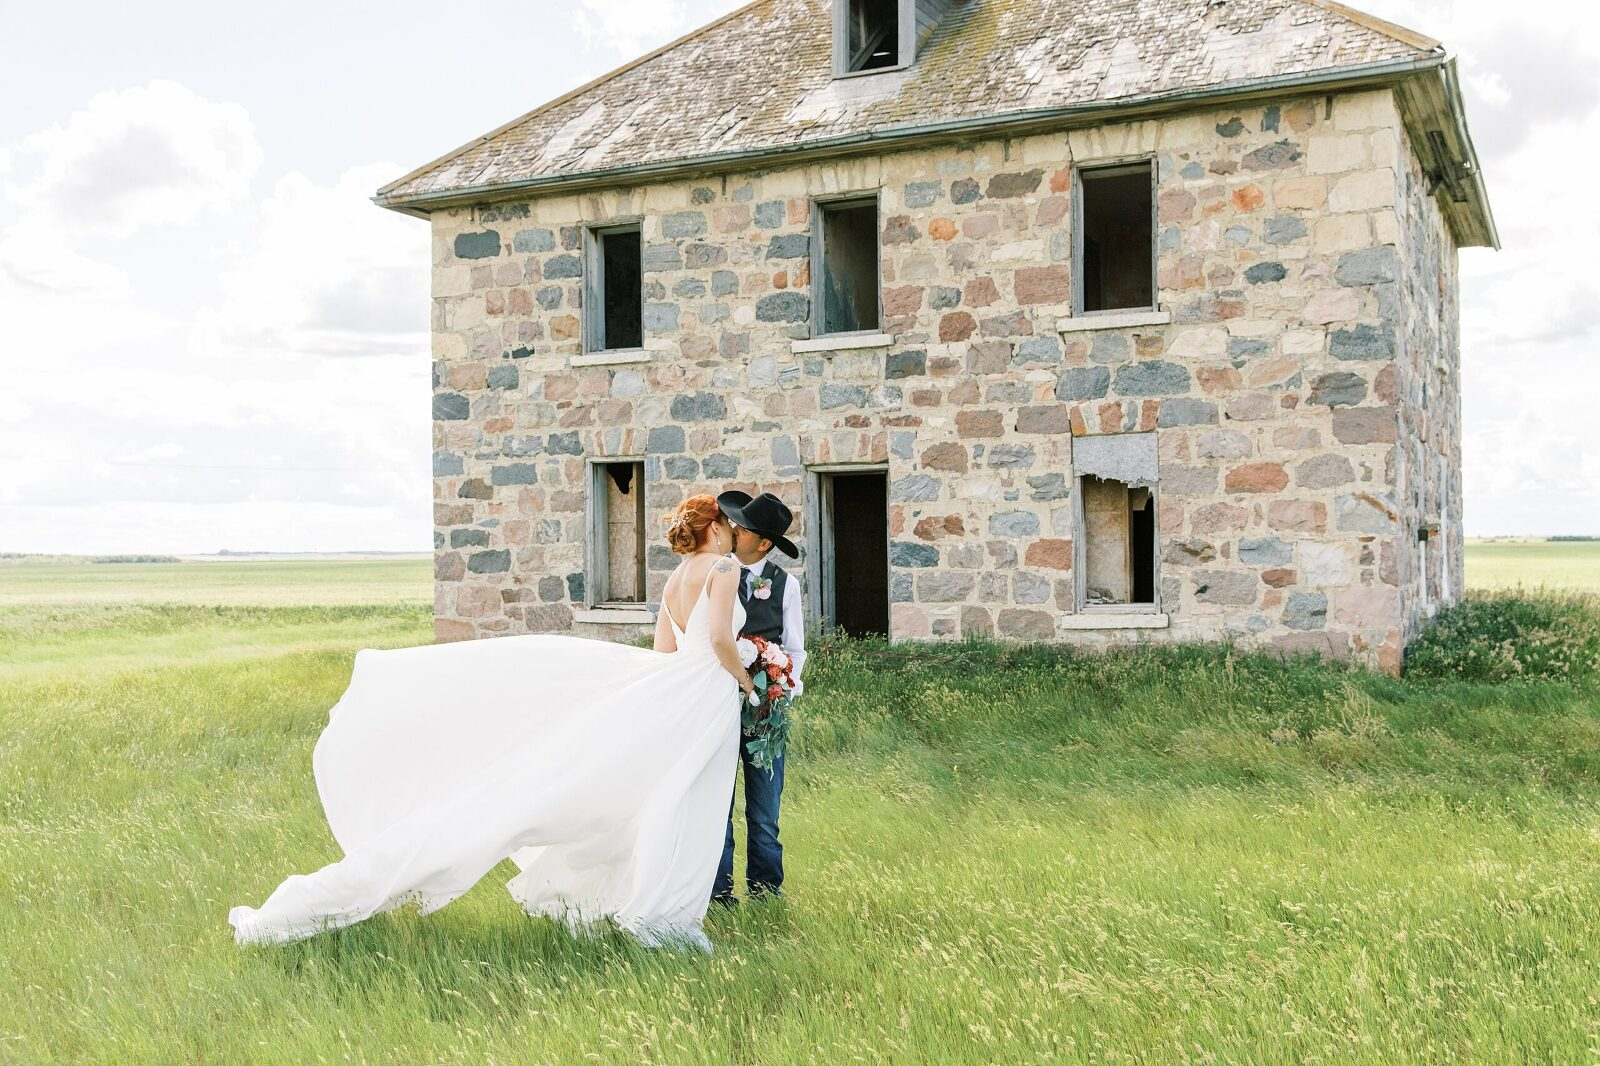 BEAUTI photography Tribune Saskatchewan portrait wedding photographer wedding portraits